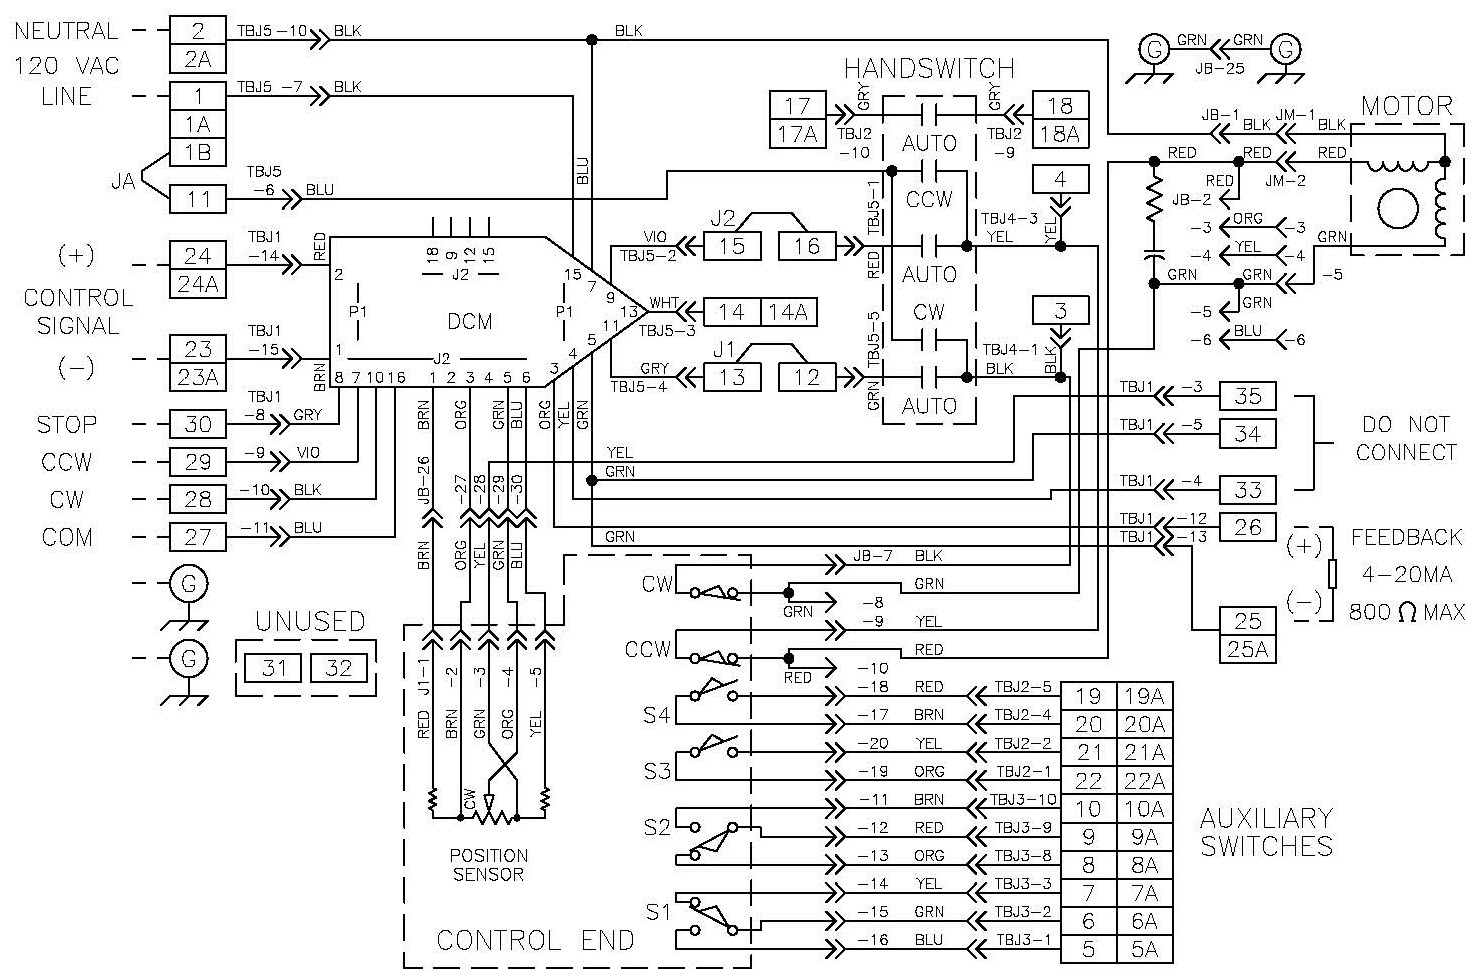 foundation fieldbus wiring diagram